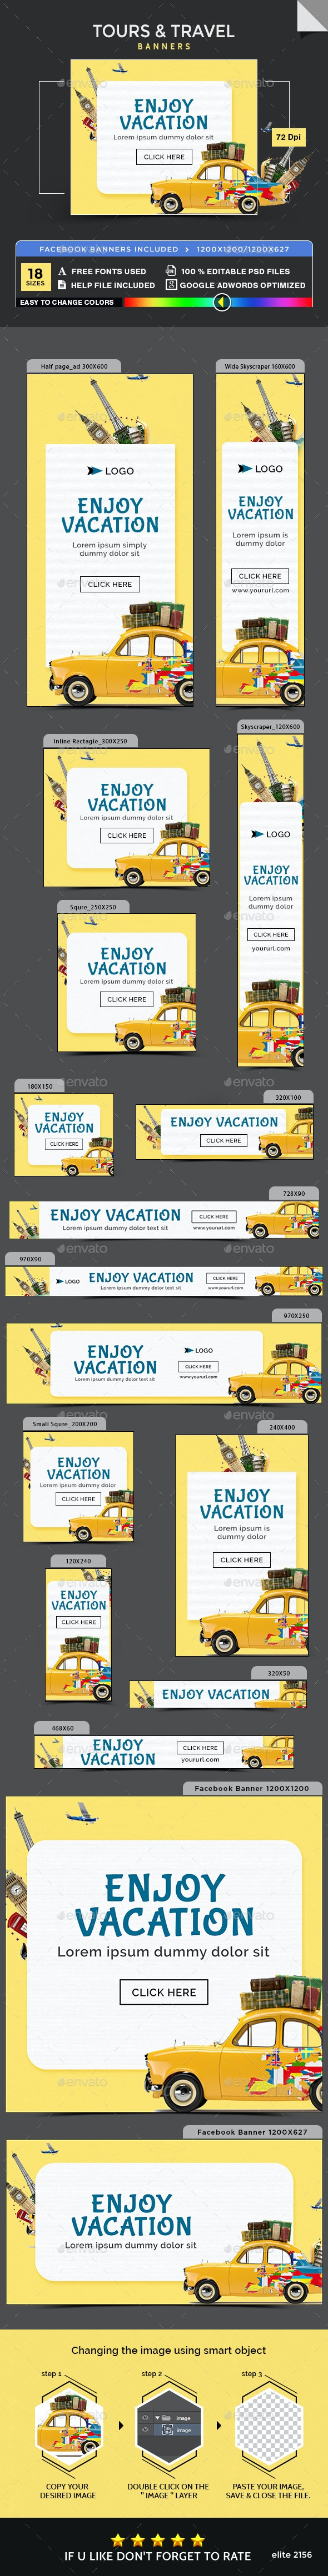 Tours & Travel Banners - Banners & Ads Web Elements